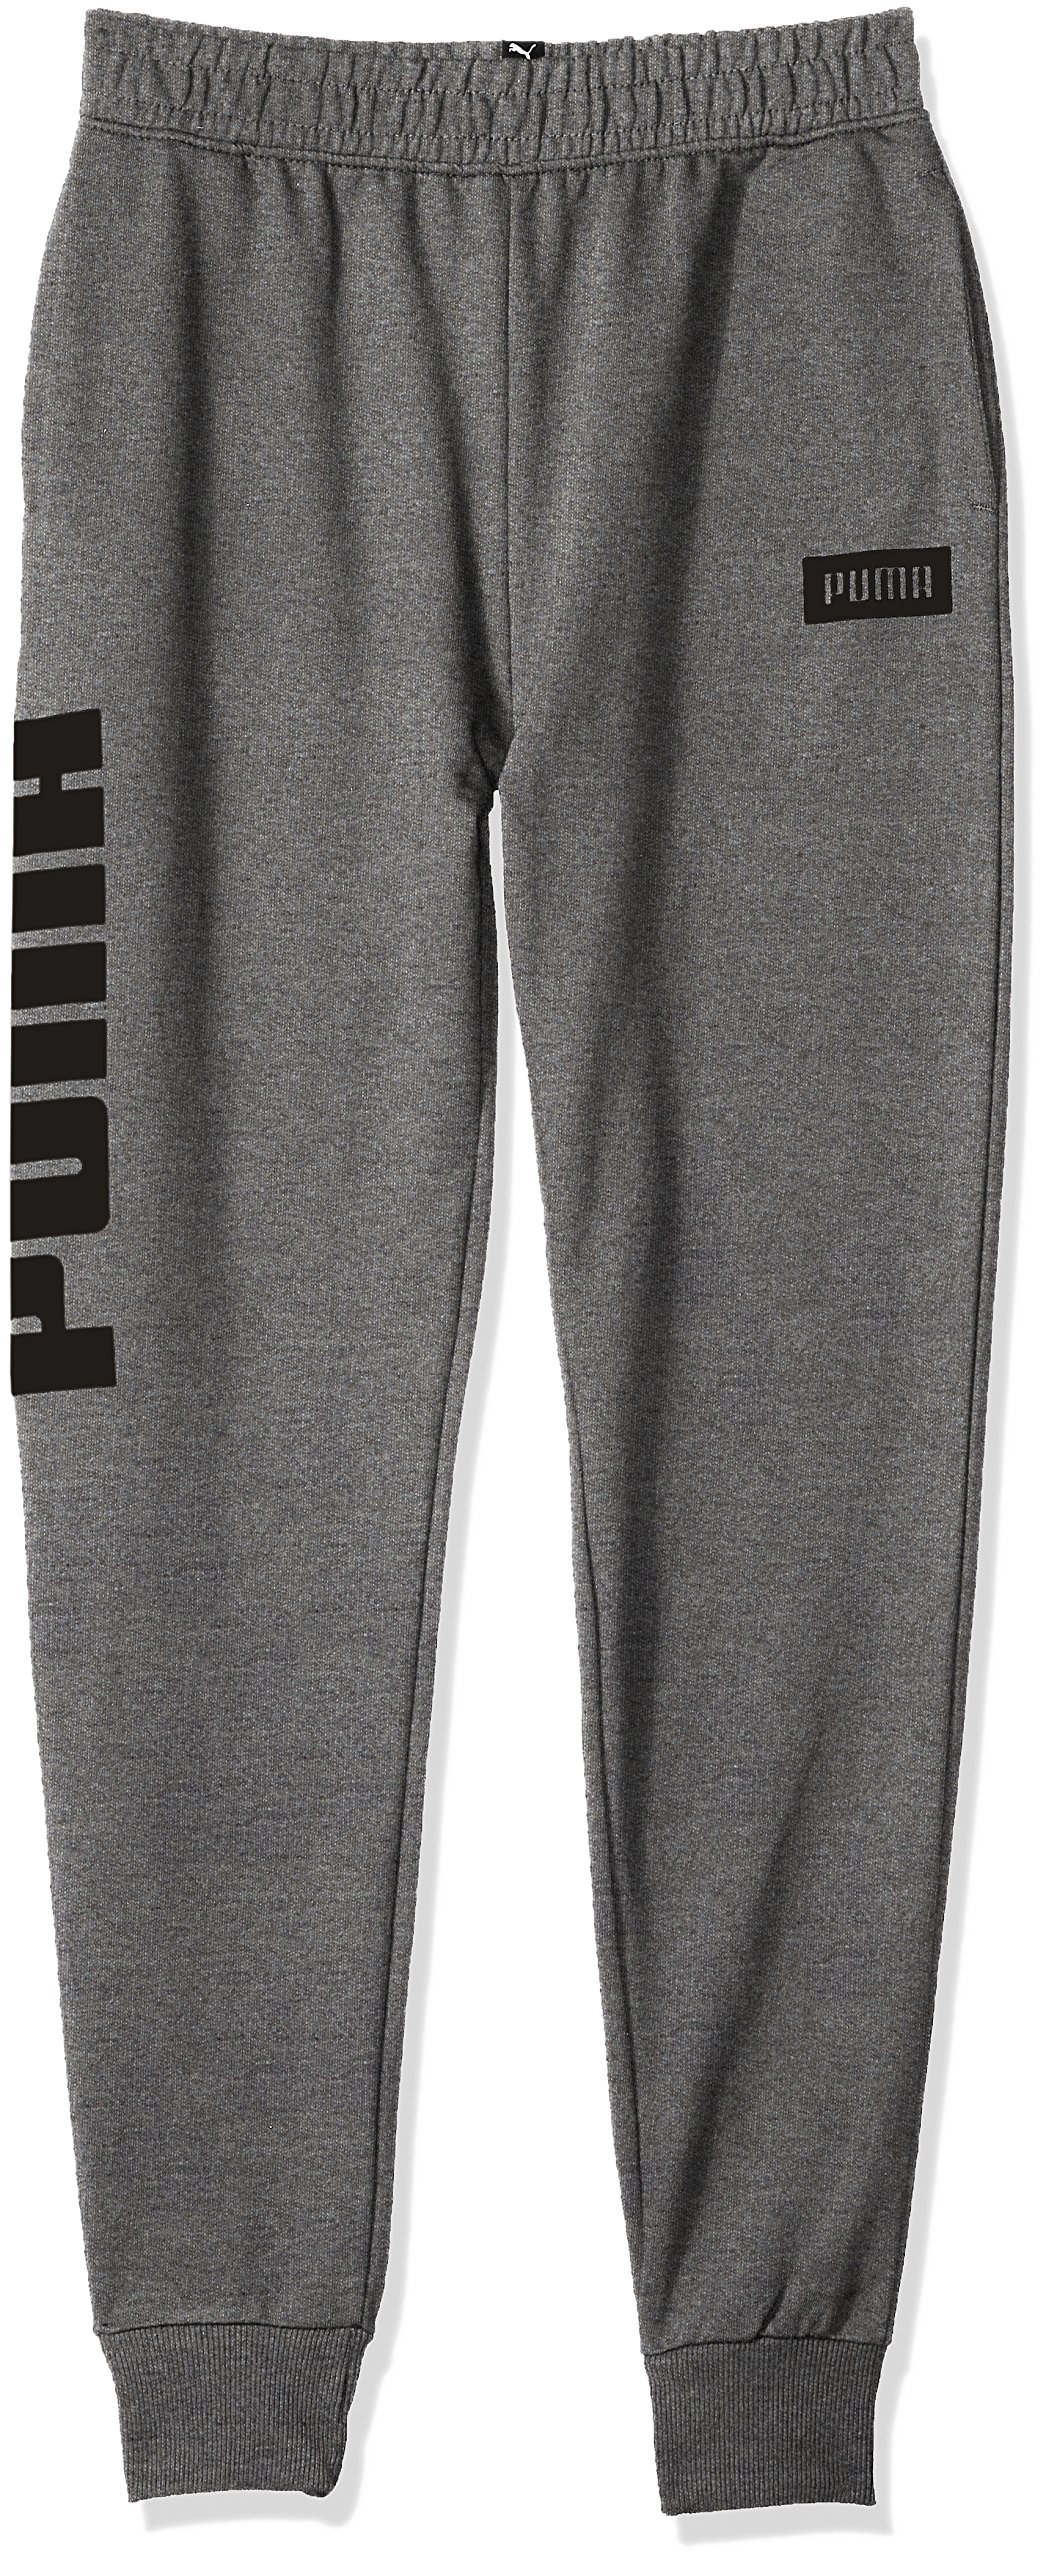 PUMA Toddler Boys' Rebel Joggers, Medium Heather Grey, 3T